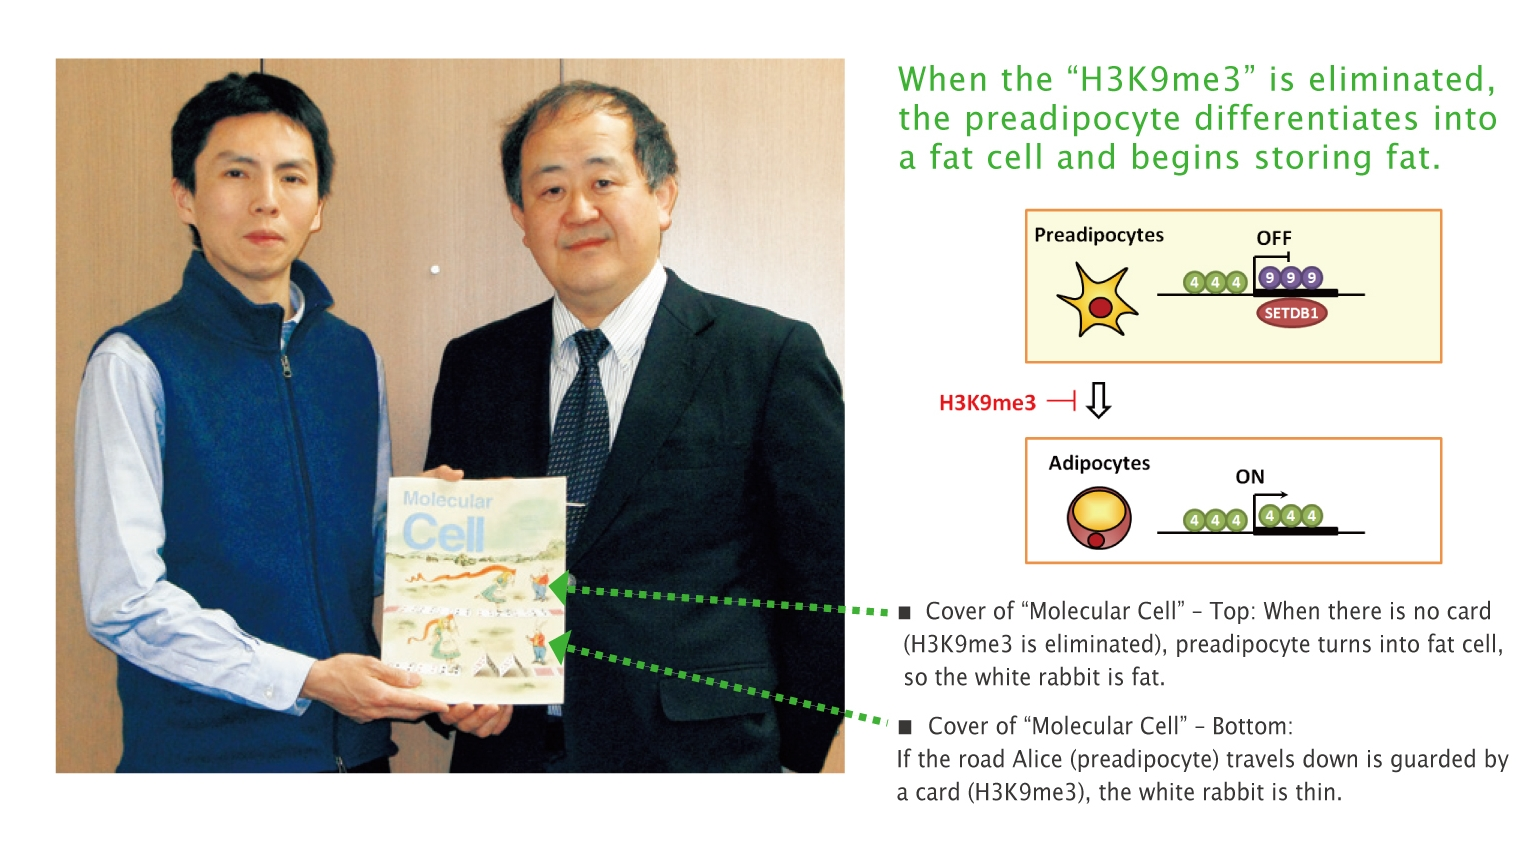 When the H3K9me3 is eliminated, the preadipocyte differentiates into a fat cell and begins storing fat